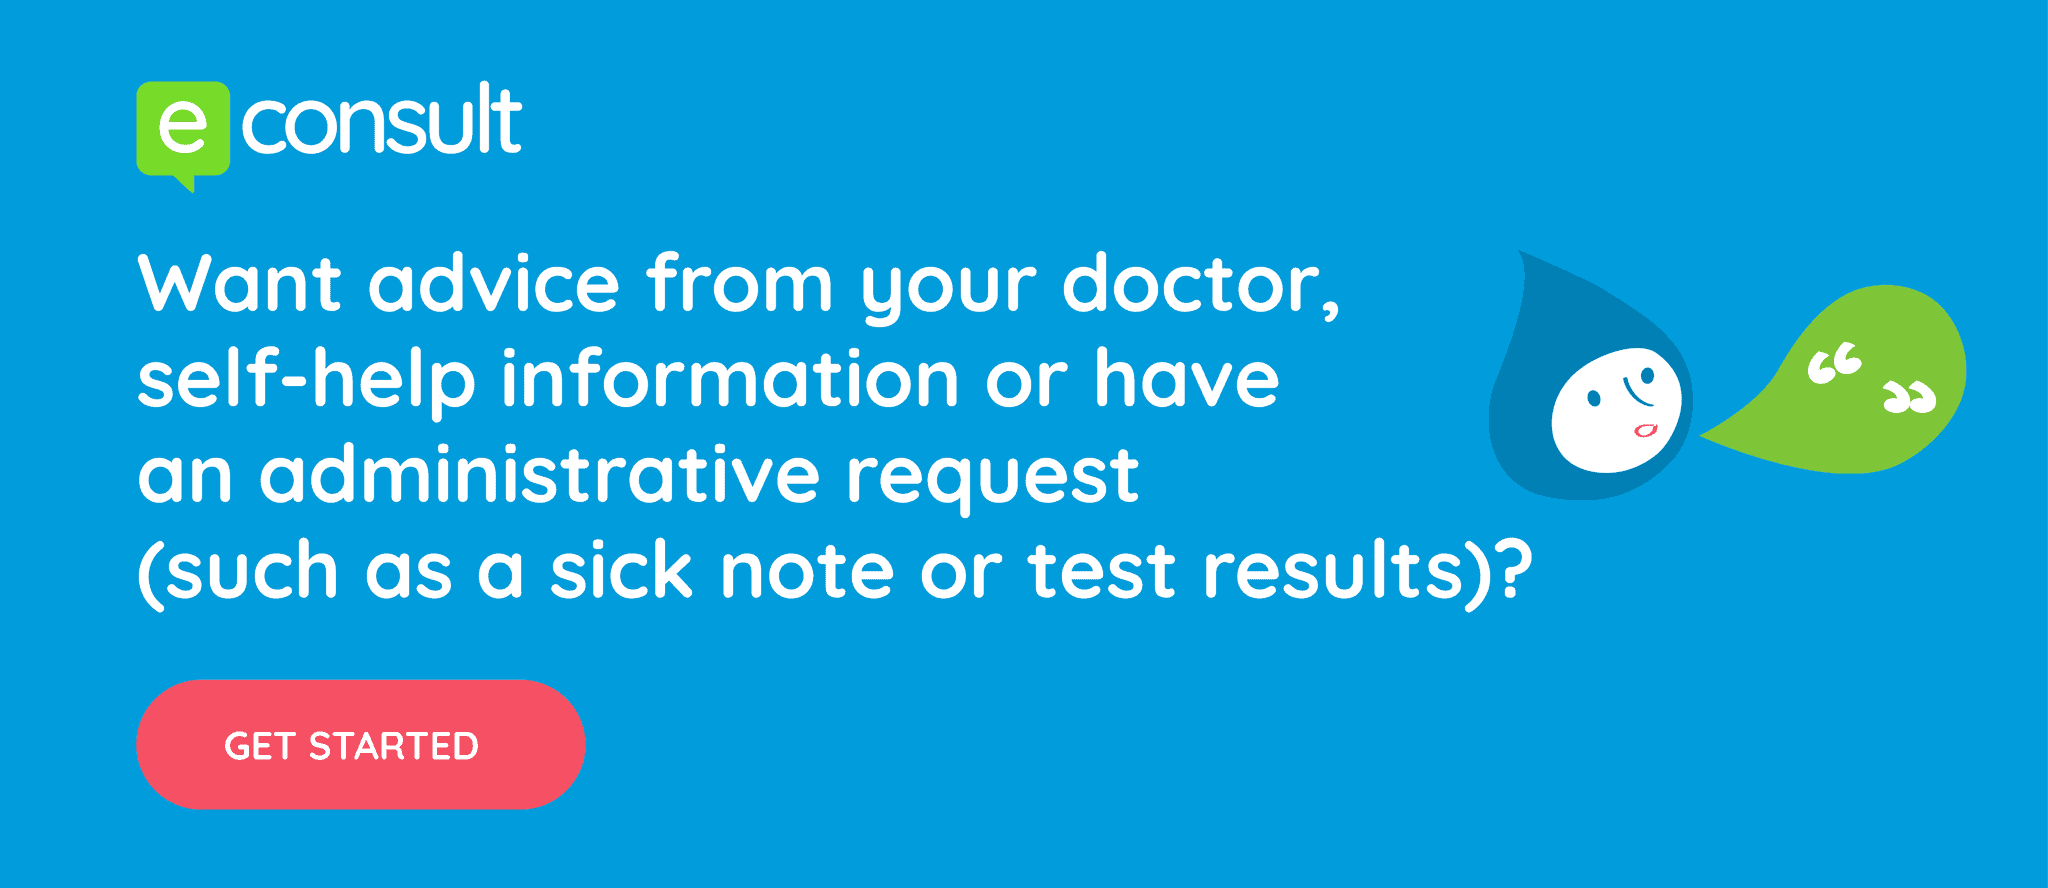 Want advice from your doctor, self-help information or have an administration request? Do it online.